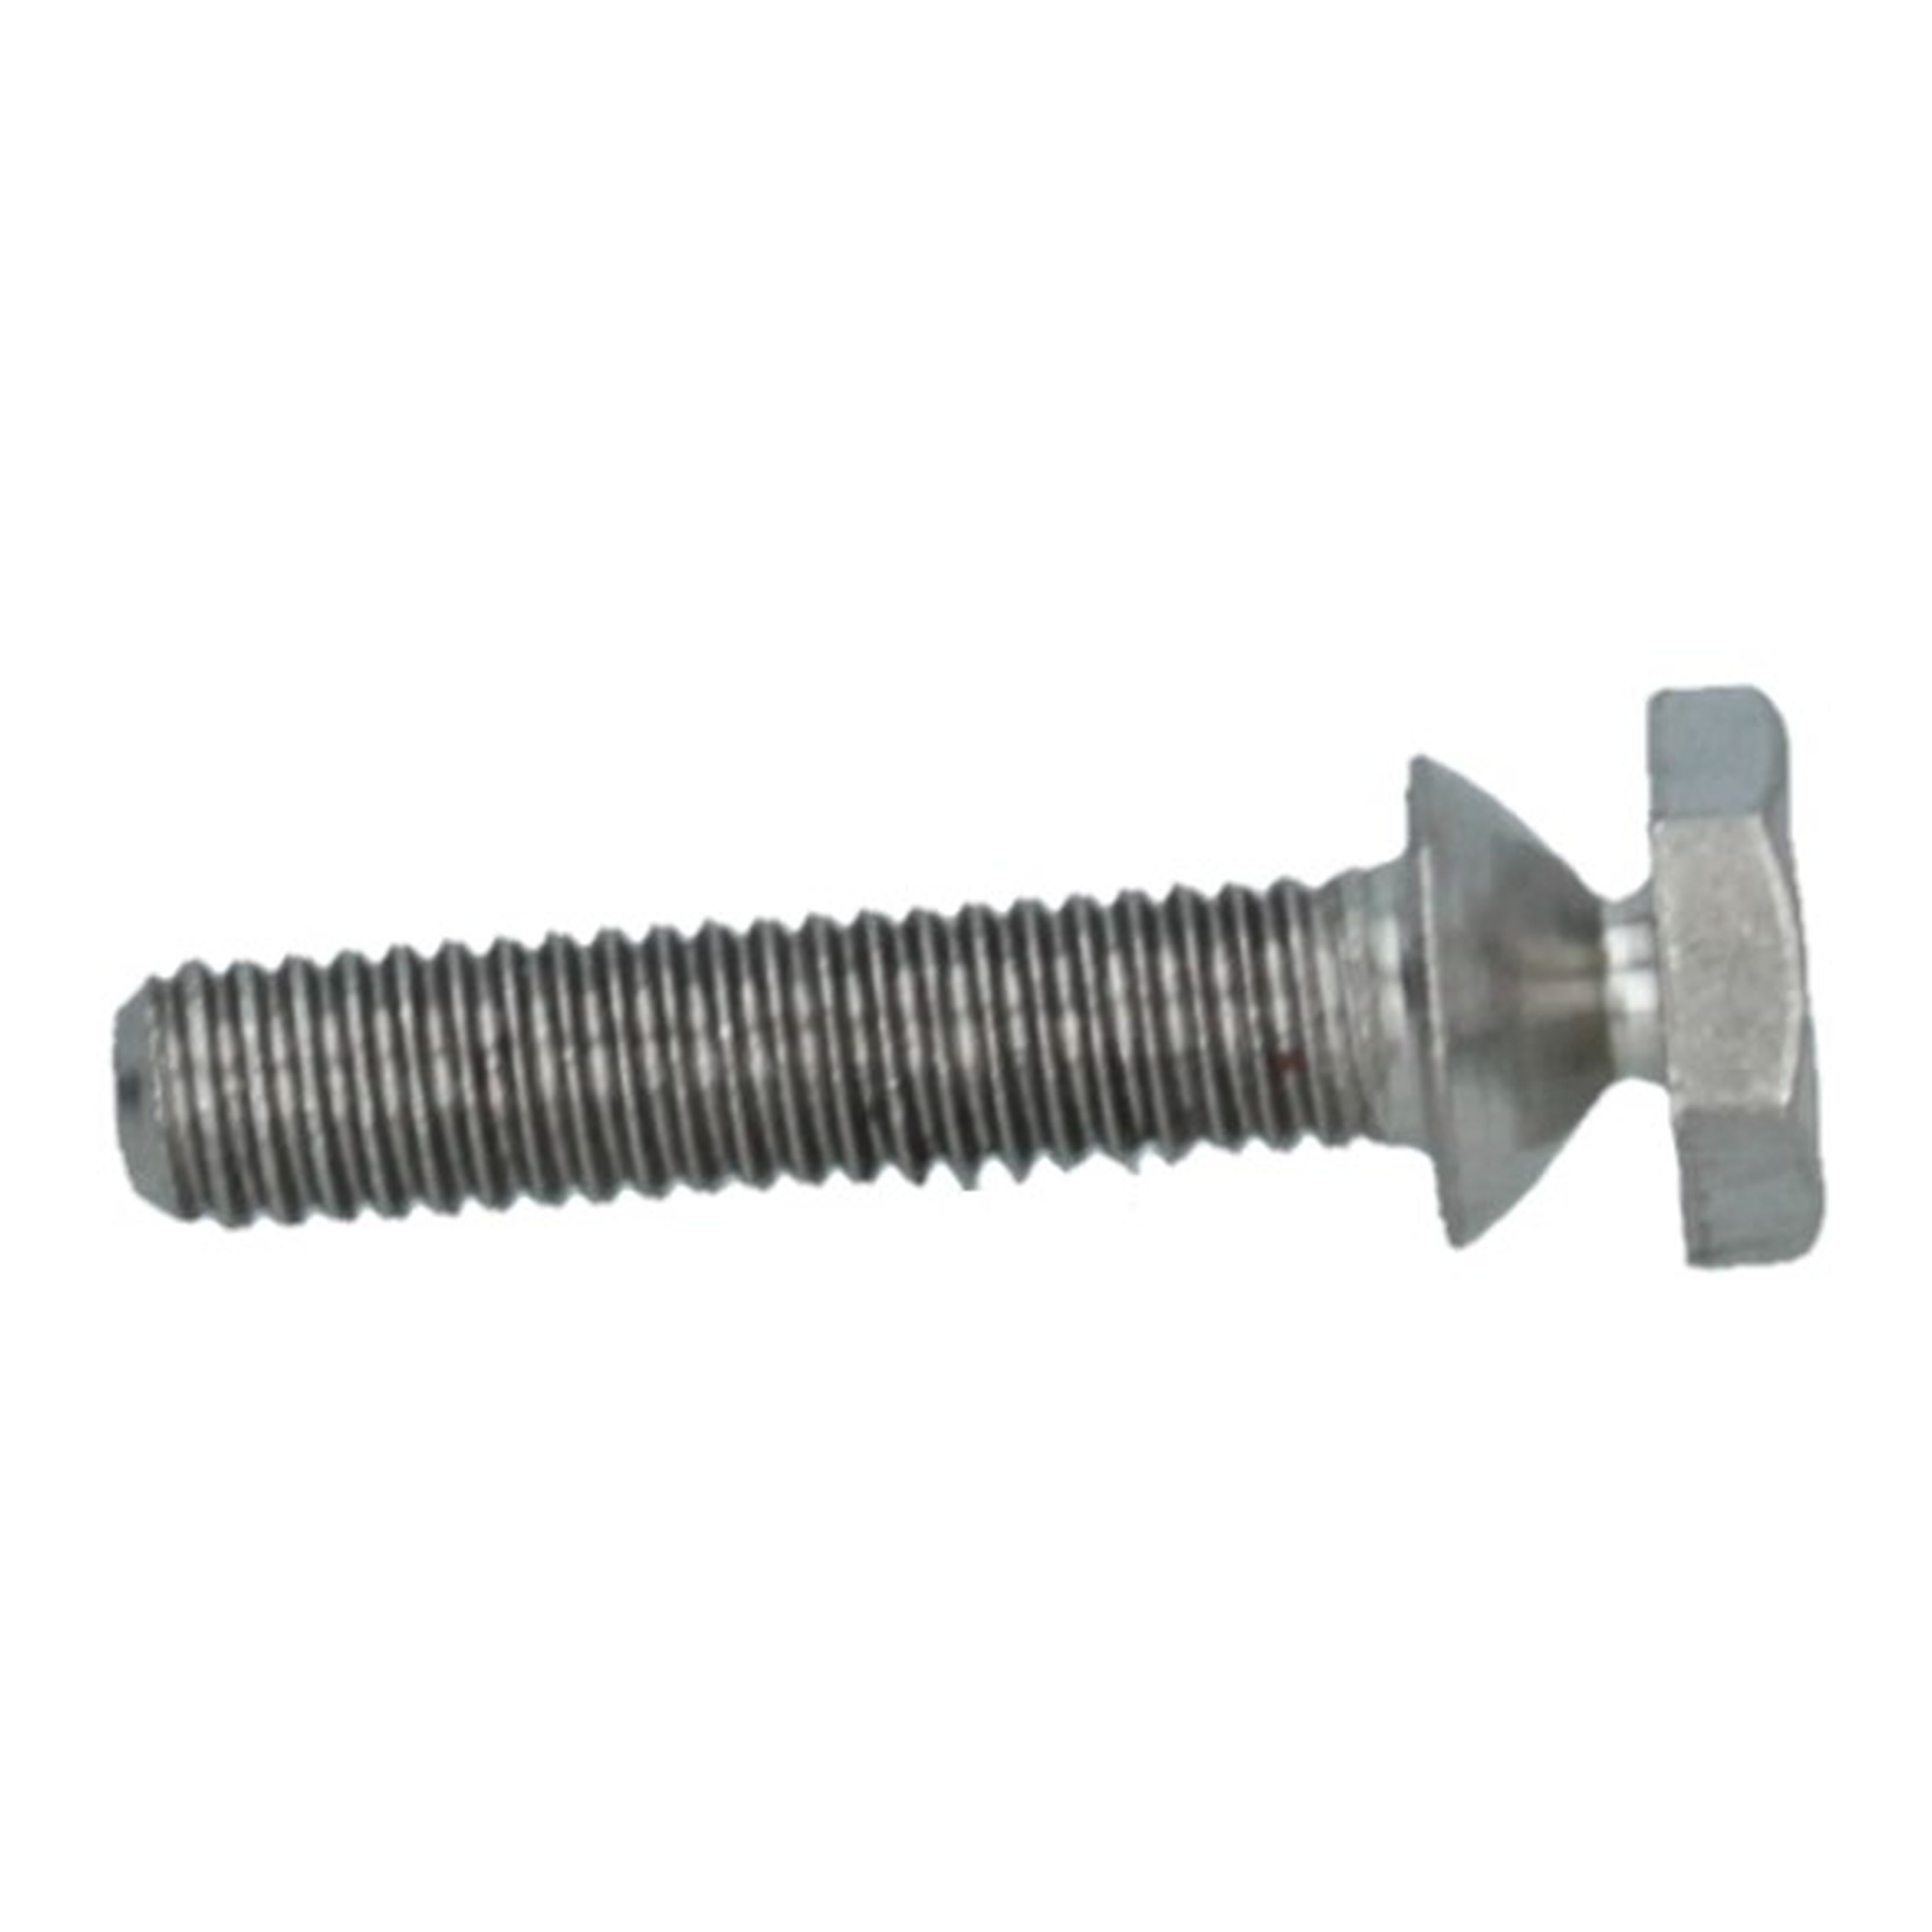 Ferrari Ignition Barrel Shear Bolt 275 (168045)